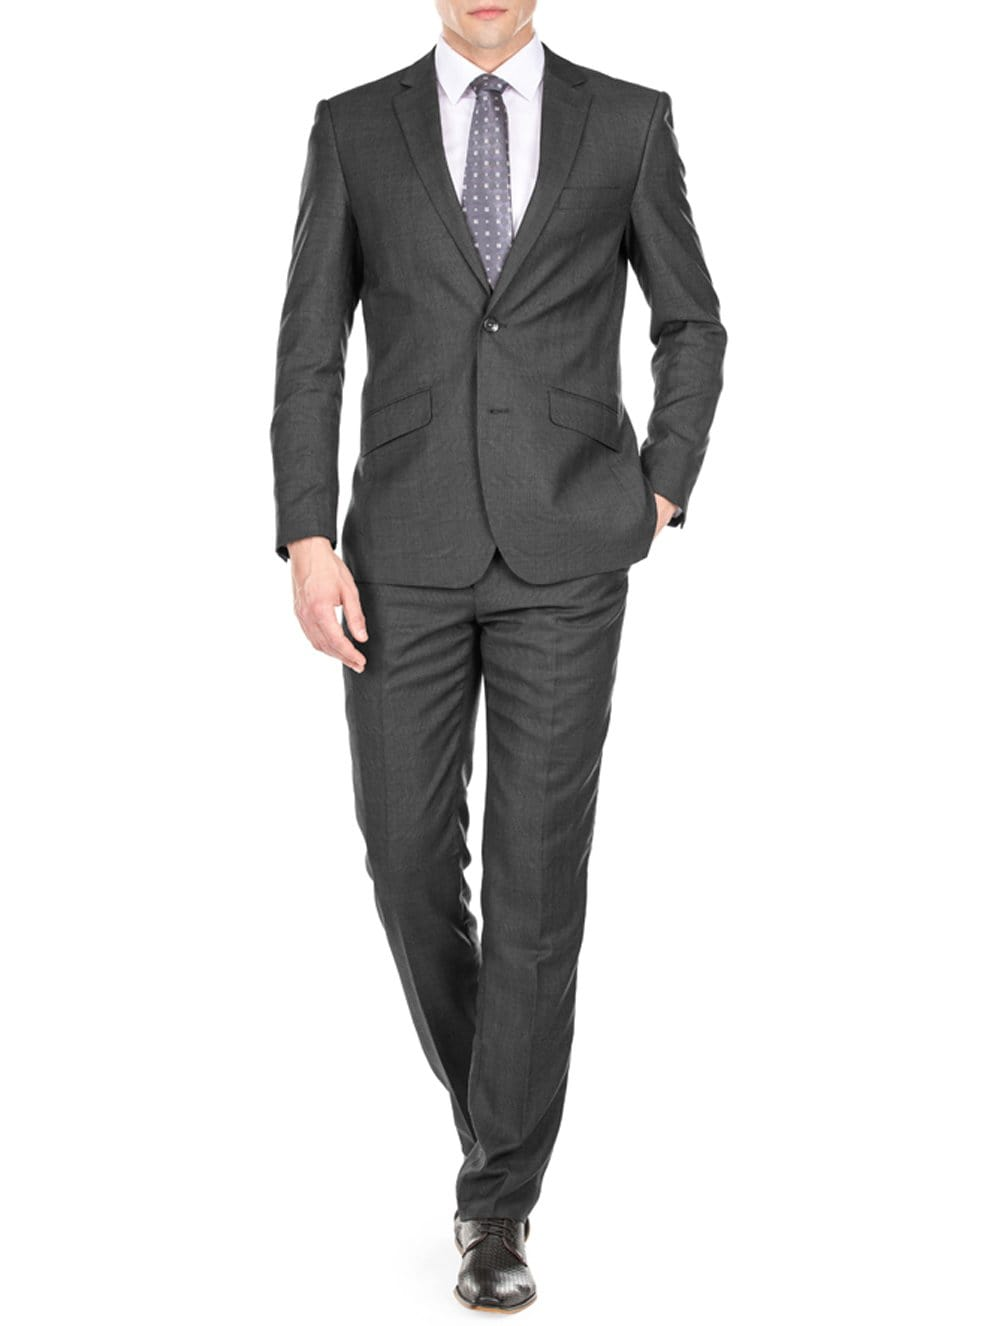 DAILY HAUTE Men's Suits CHARCOAL / 36Rx30W Gino Vitale Light Glen Check Men's Slim Fit 2PC Suit